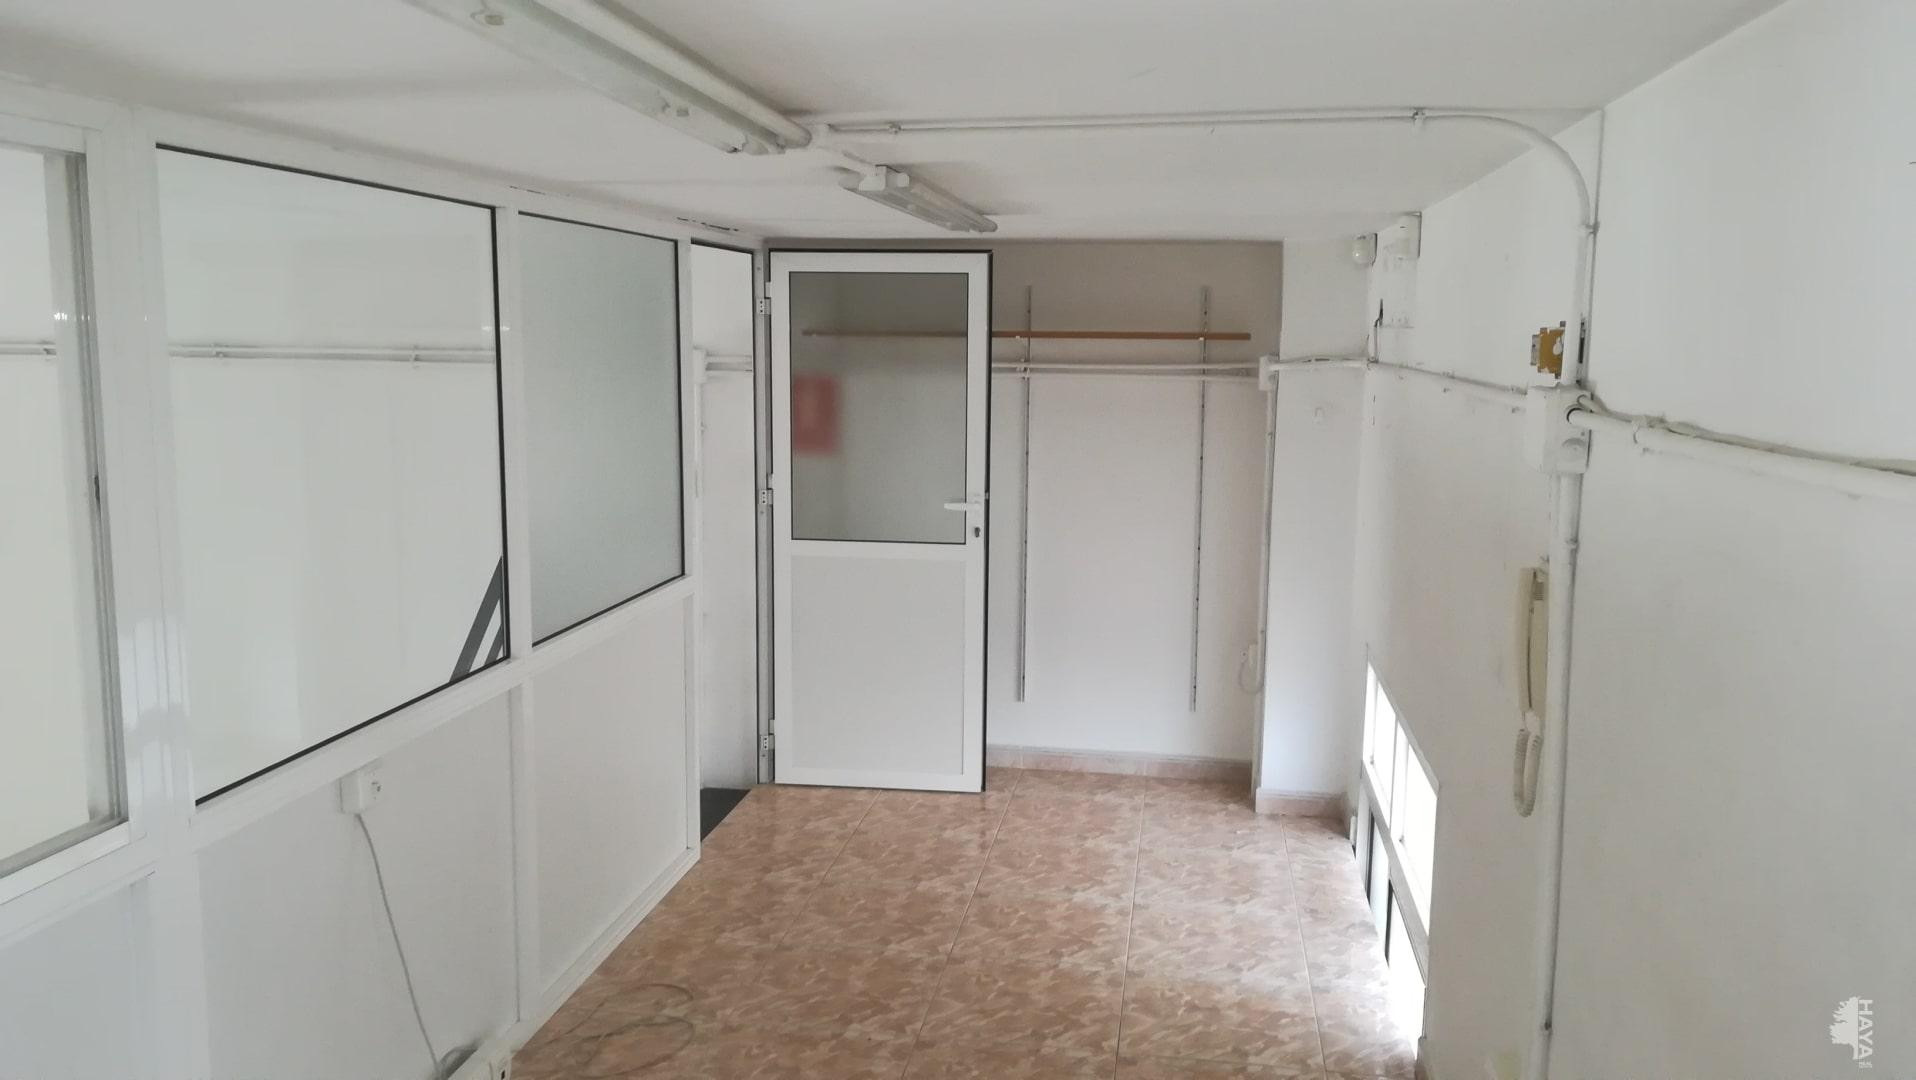 Local Comercial en  Elda, Alicante Provincia